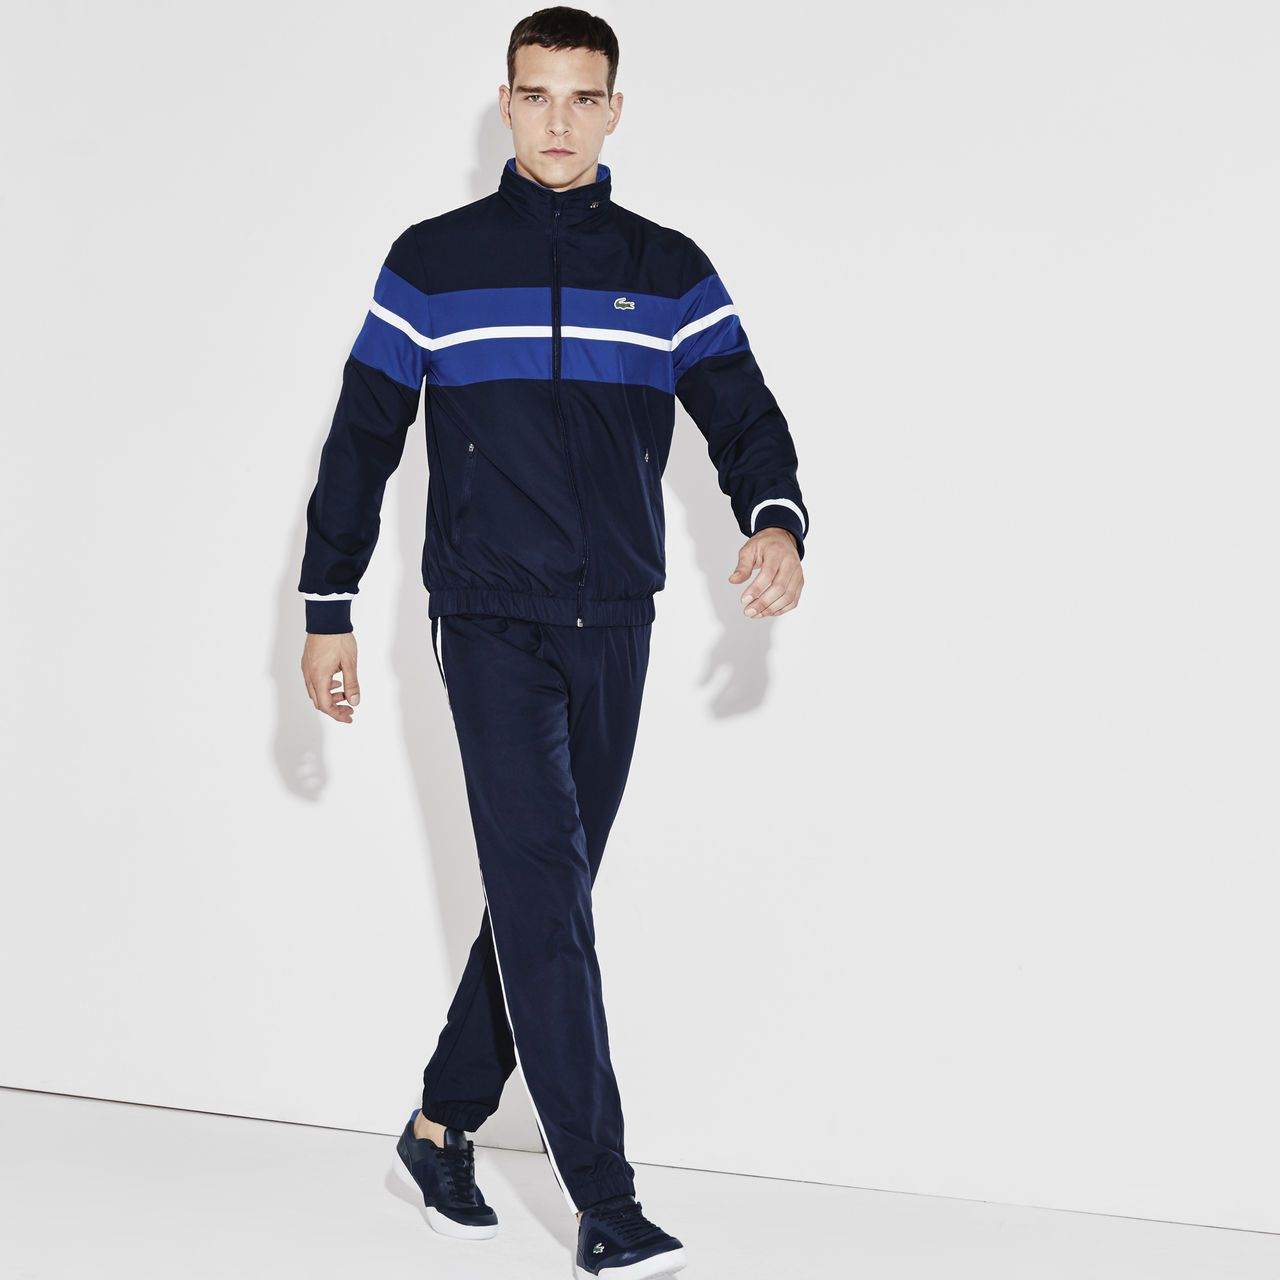 dd10383e Tennis Lacoste SPORT tracksuit in color block print taffeta | his ...